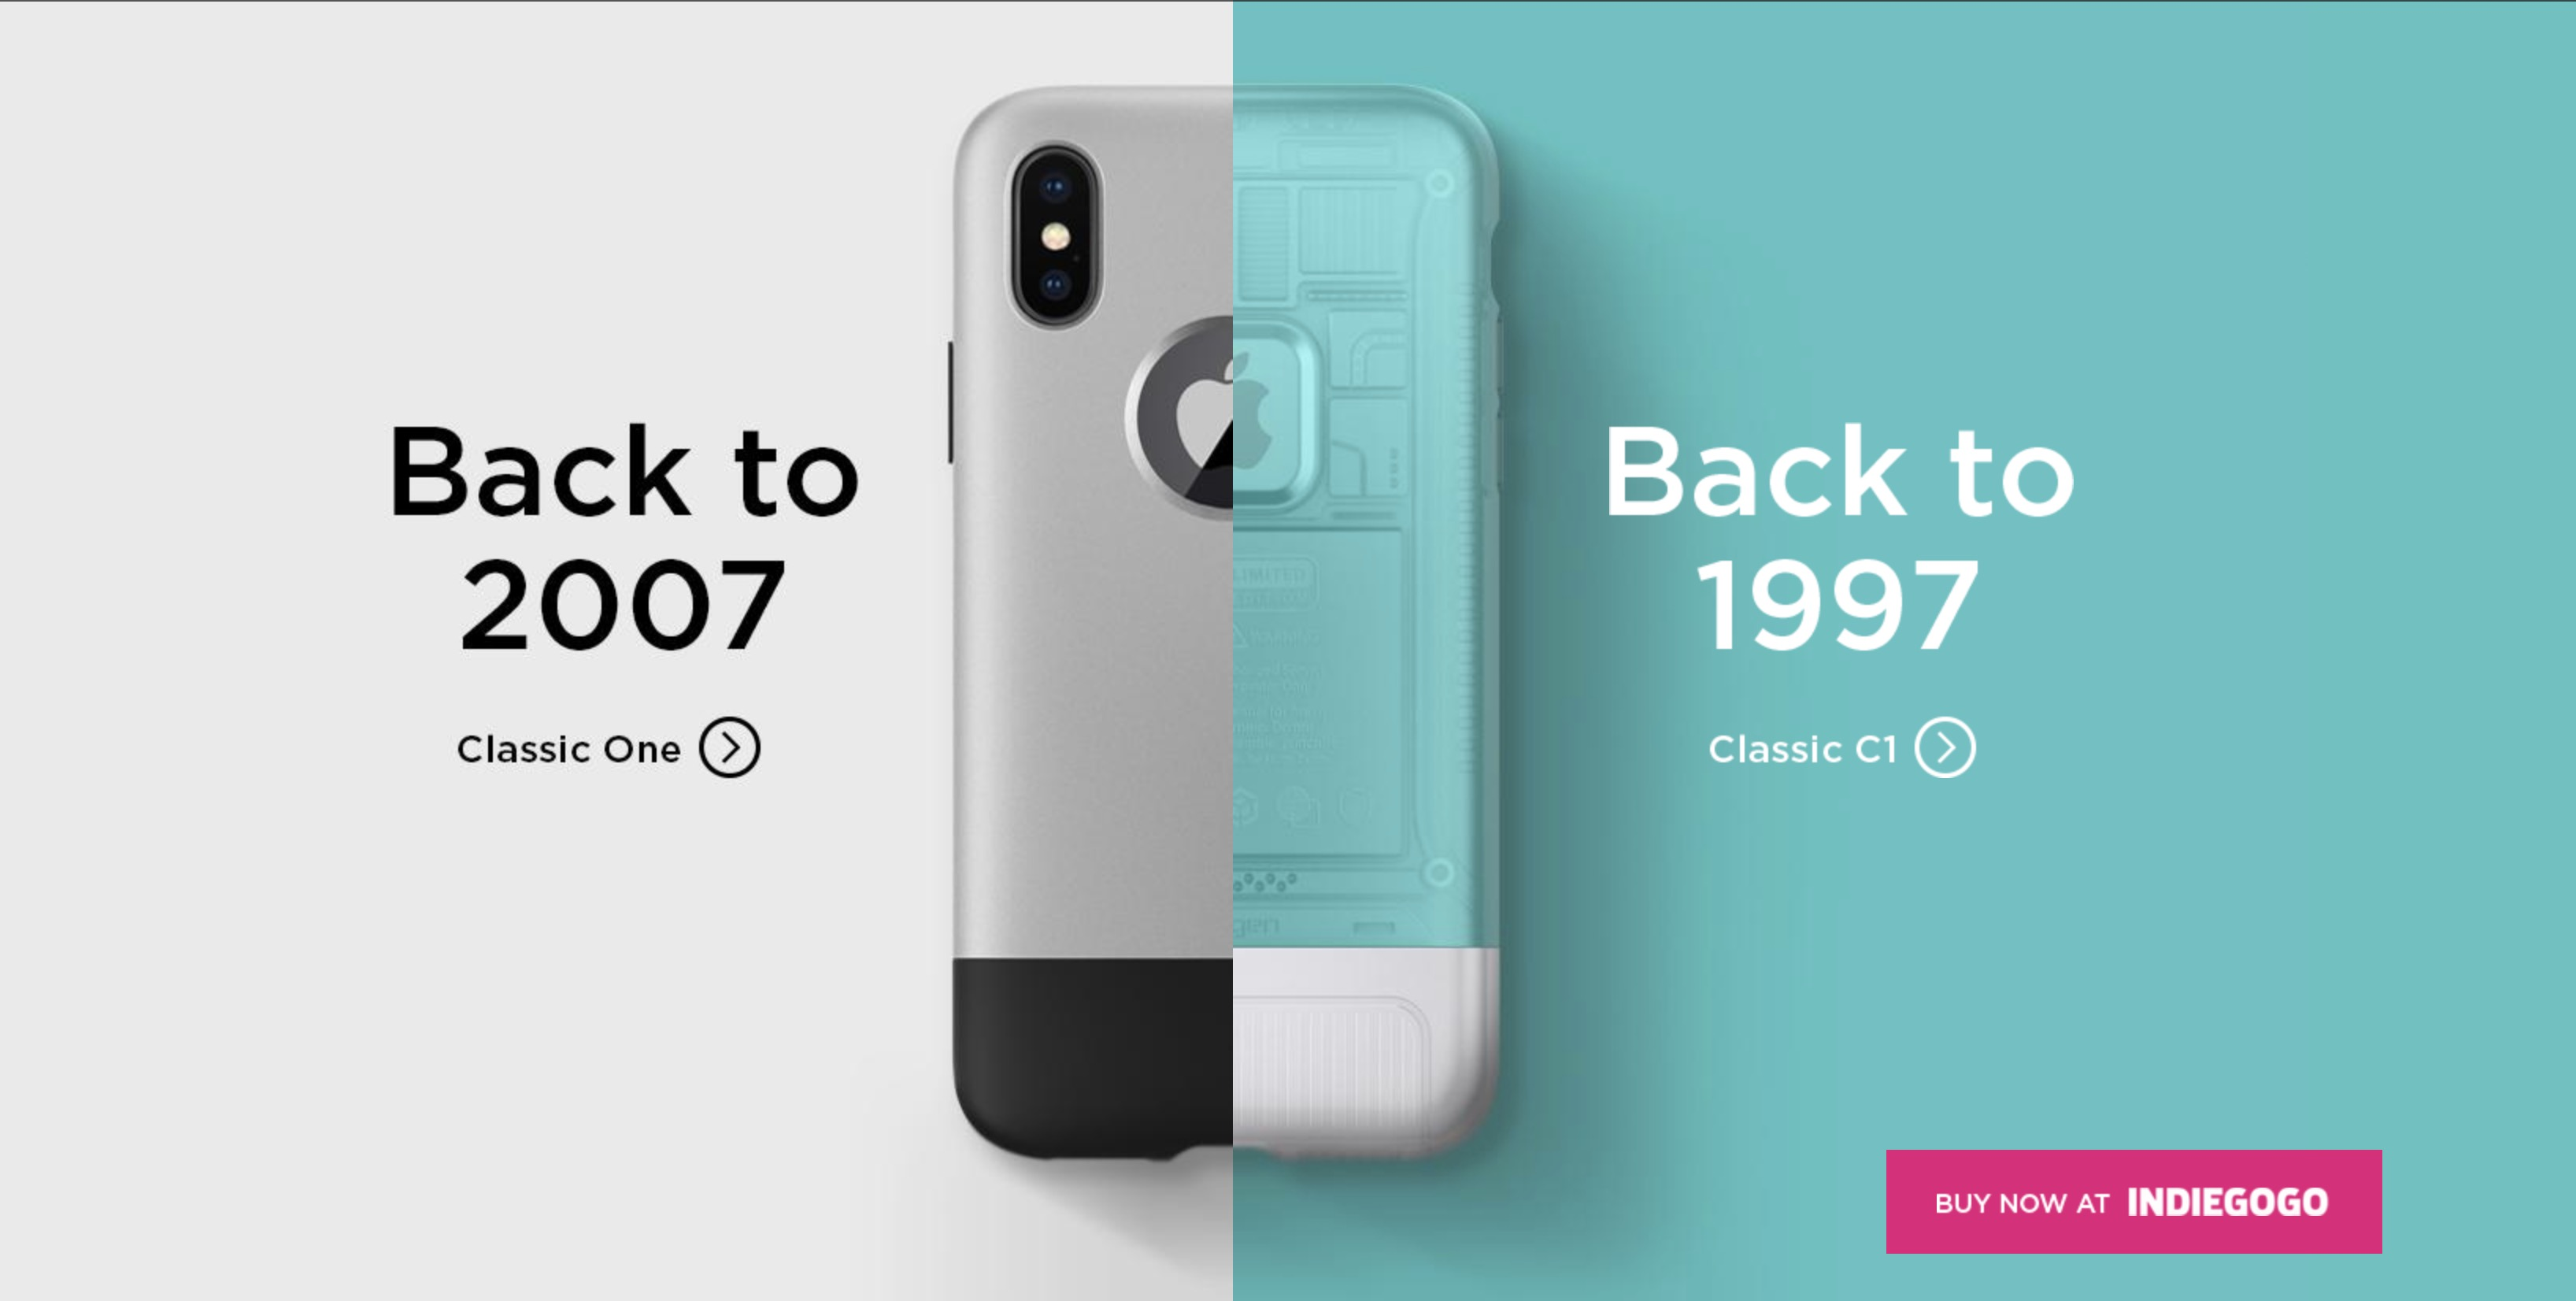 Classic C1: iPhone X case inspired by iMac G3